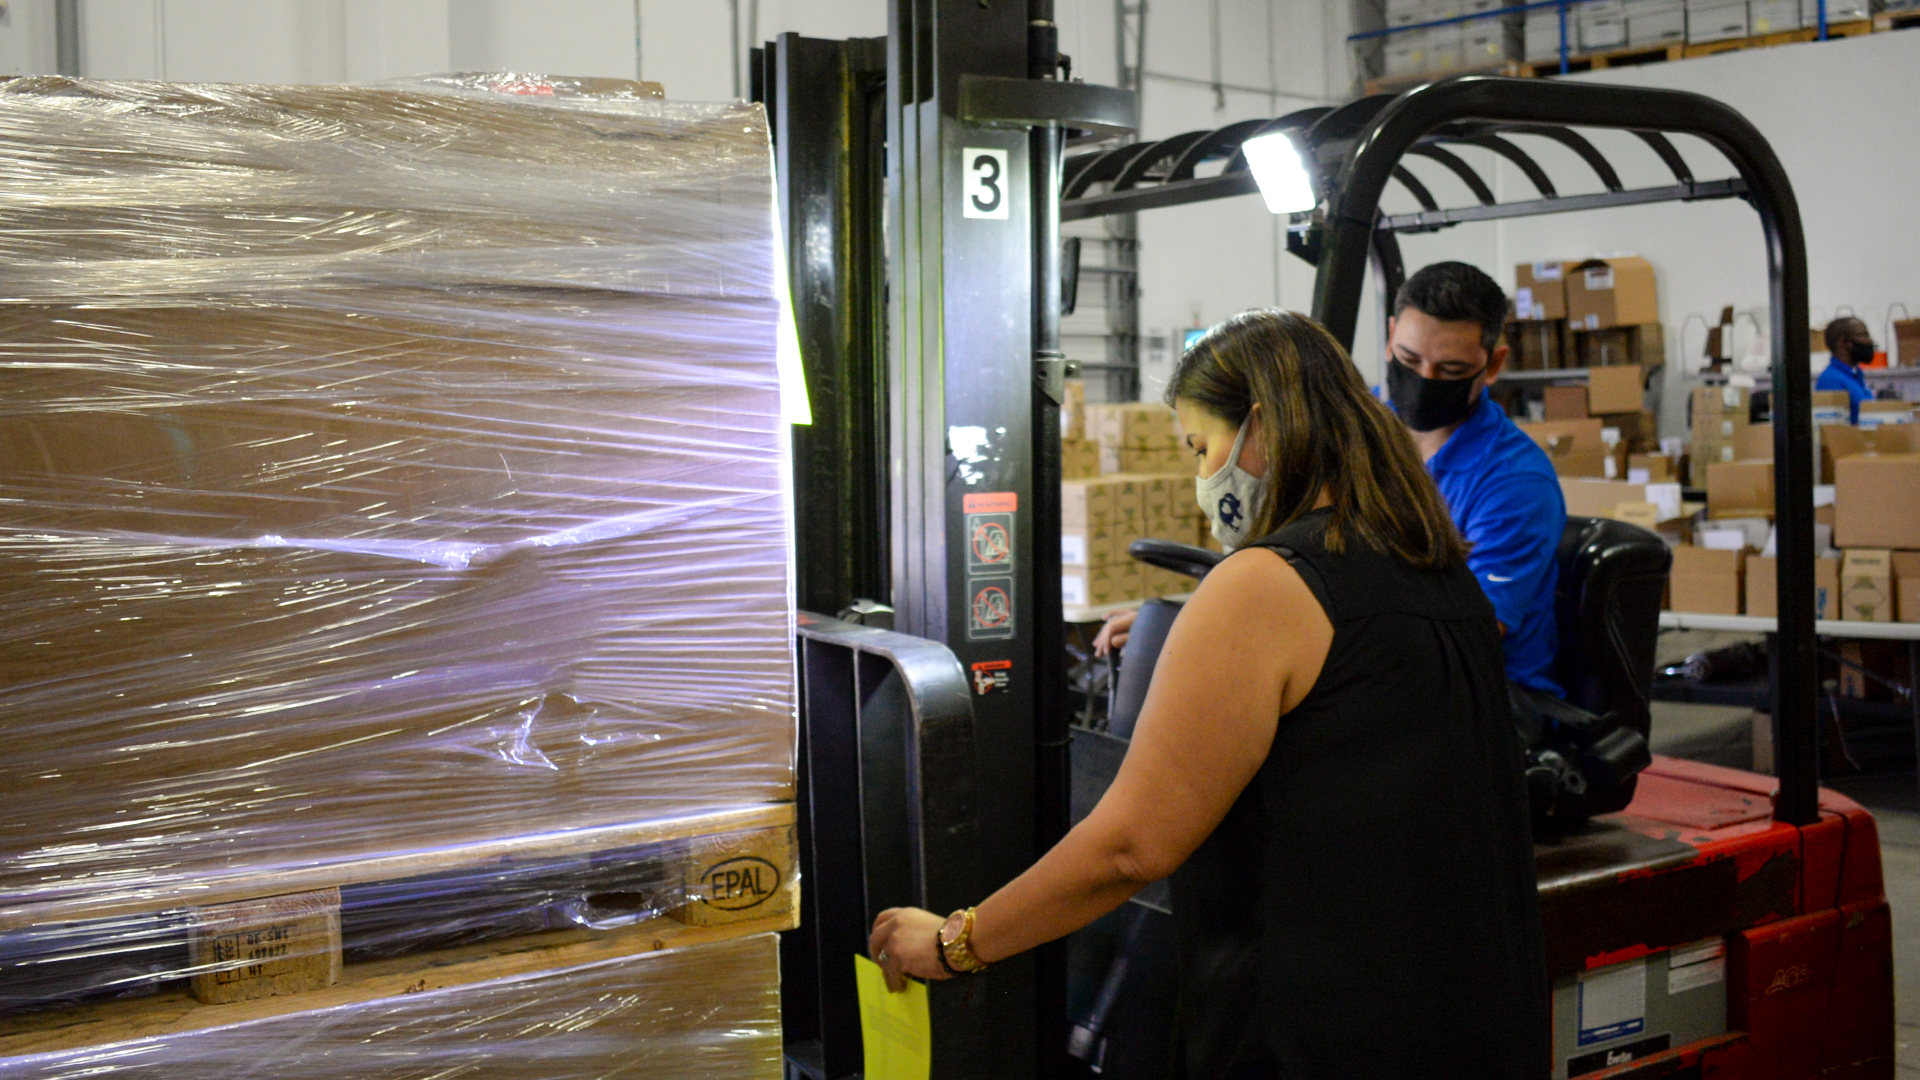 Reverse Logistics Manager places proper documentation on pallet for regulatory compliance while Warehouse Technician waits to load product onto truck with a forklift.